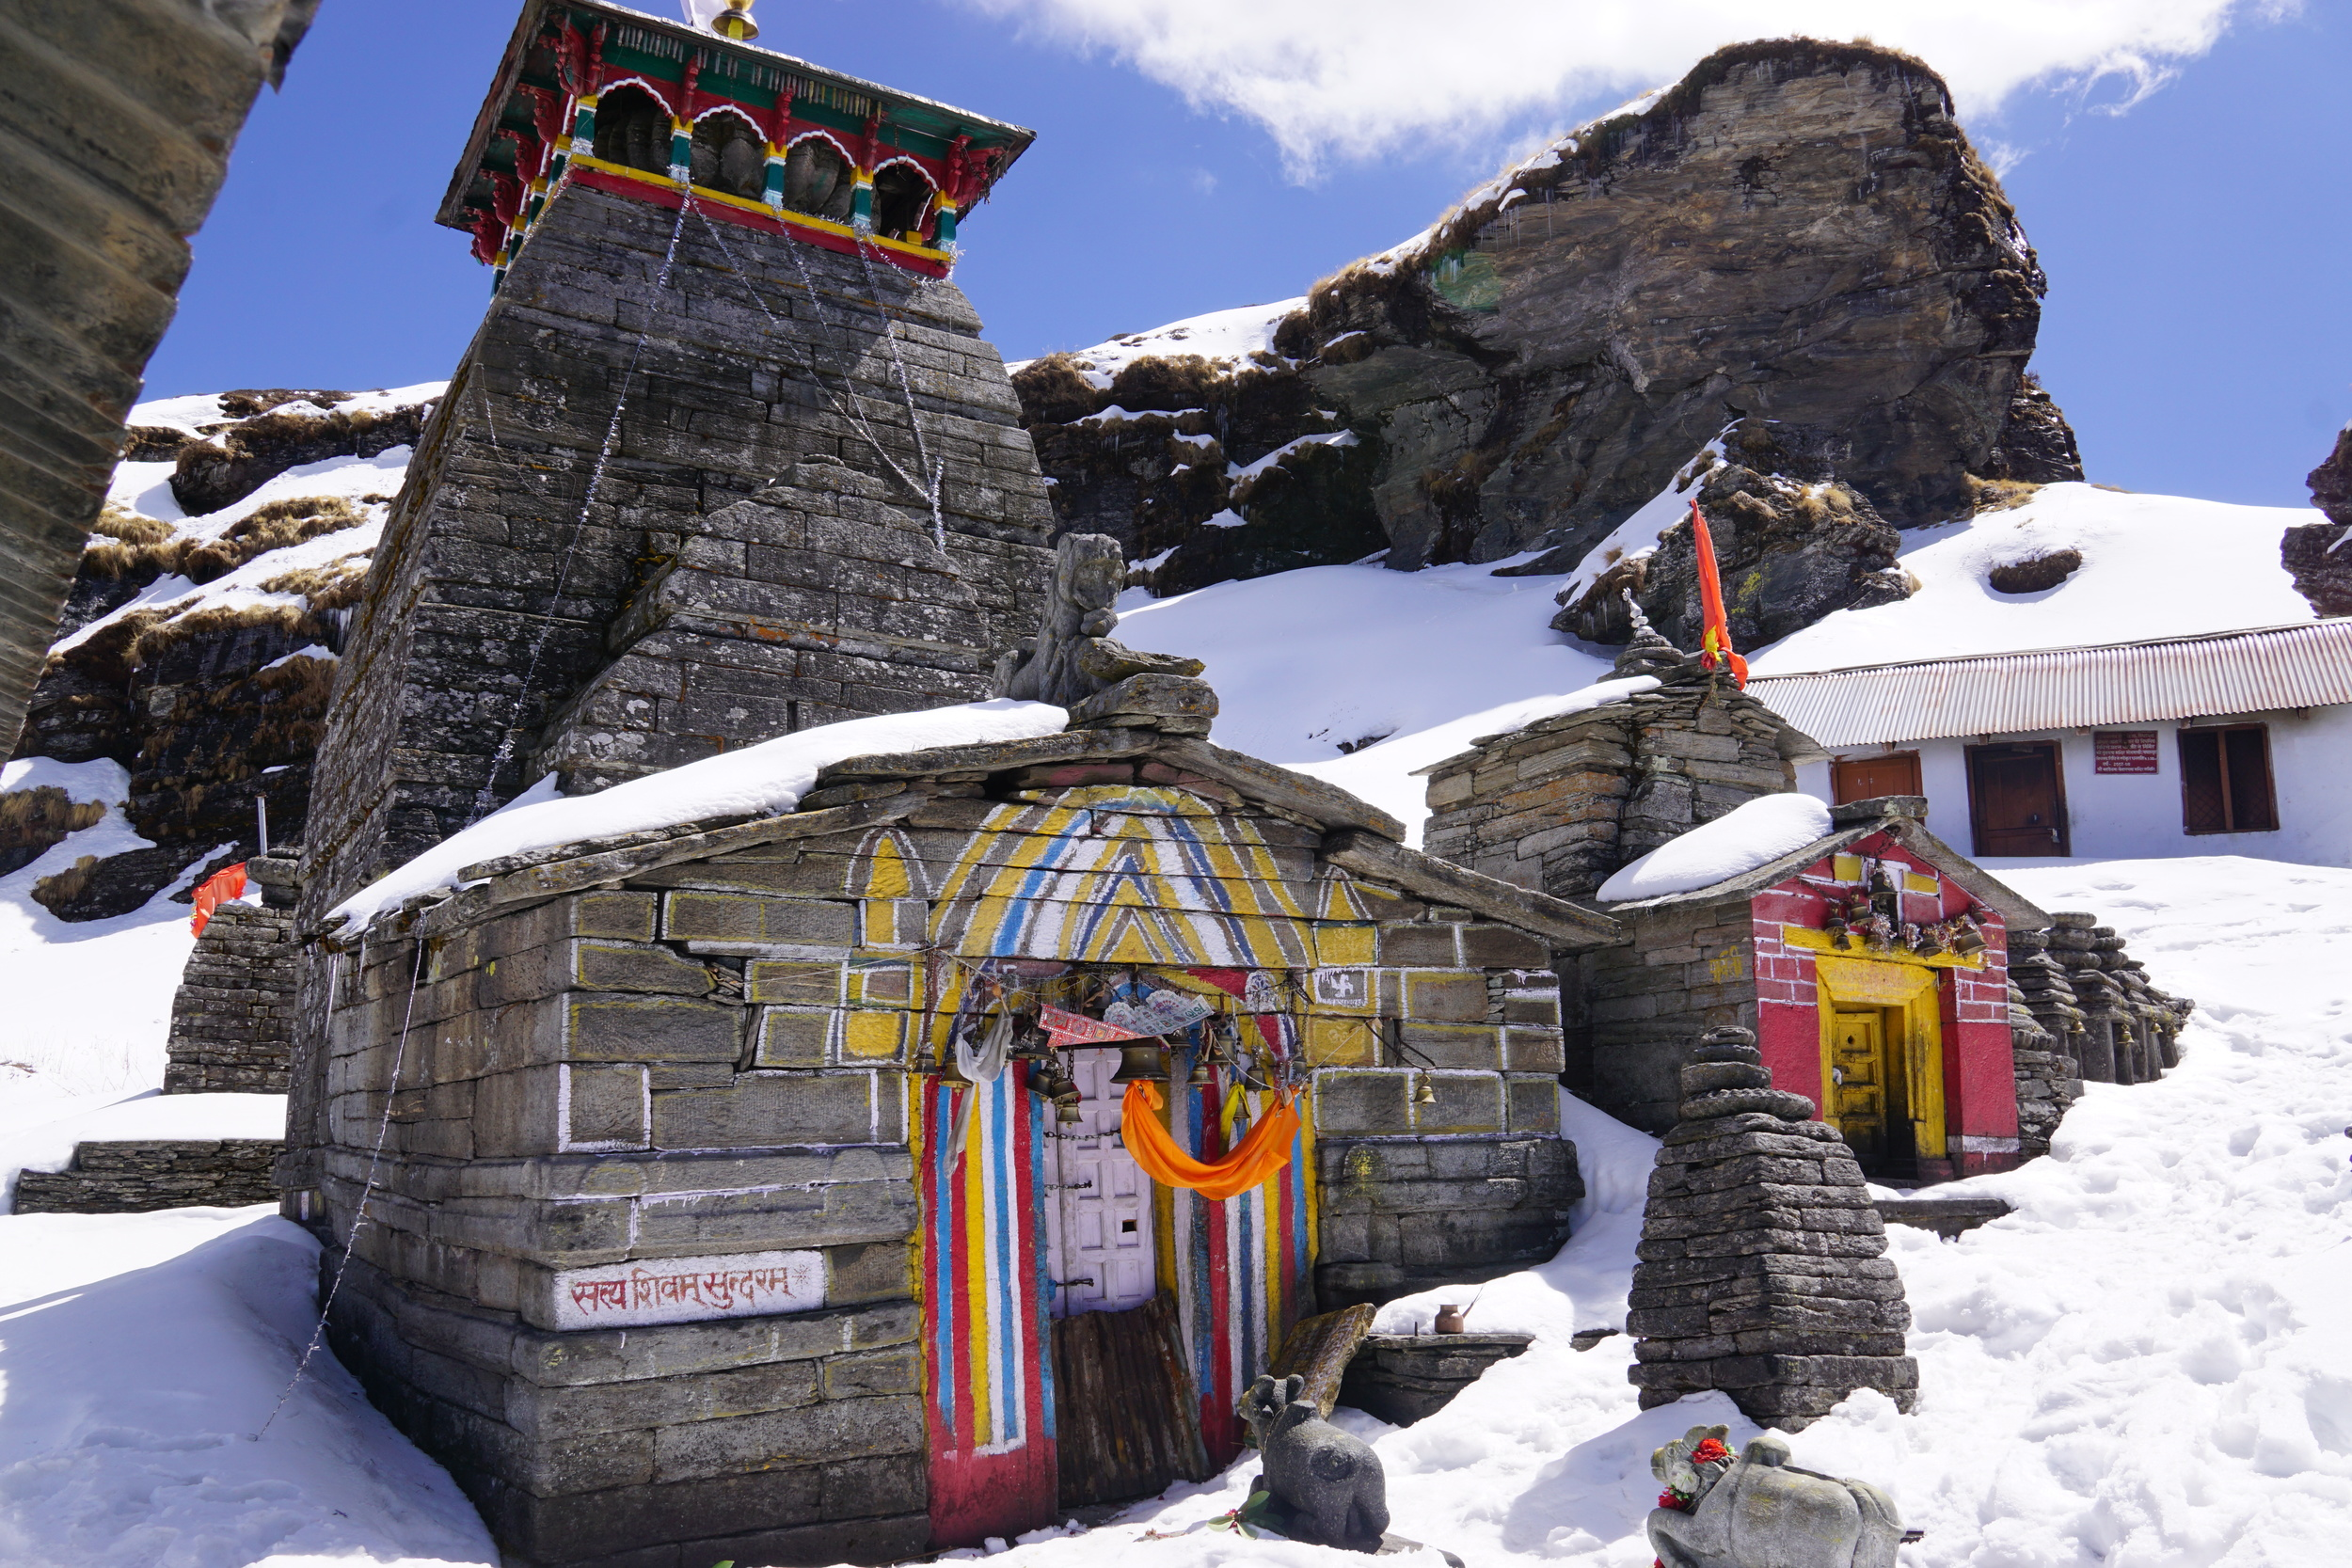 The highest temple in the world, Tungnath at 3,680 metres. It is believed to be 1000 years old. Since it was winter, we couldn't really enter the temple grounds.